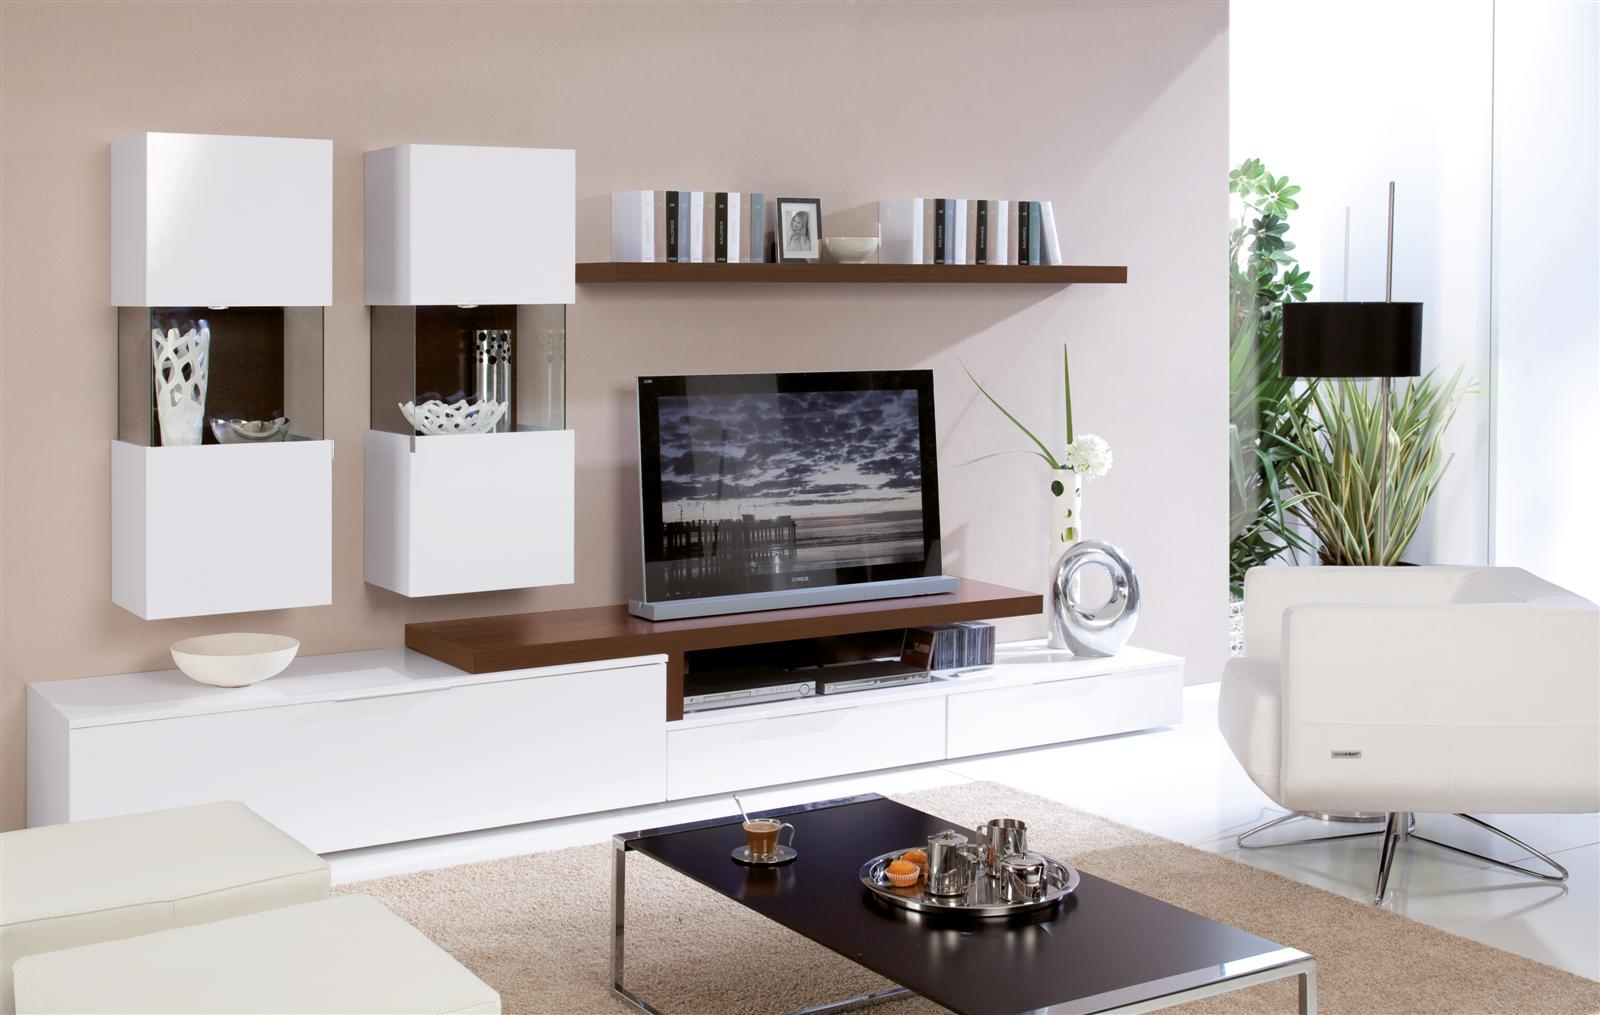 20 modern tv unit design ideas for bedroom living room for Modern living room tv ideas